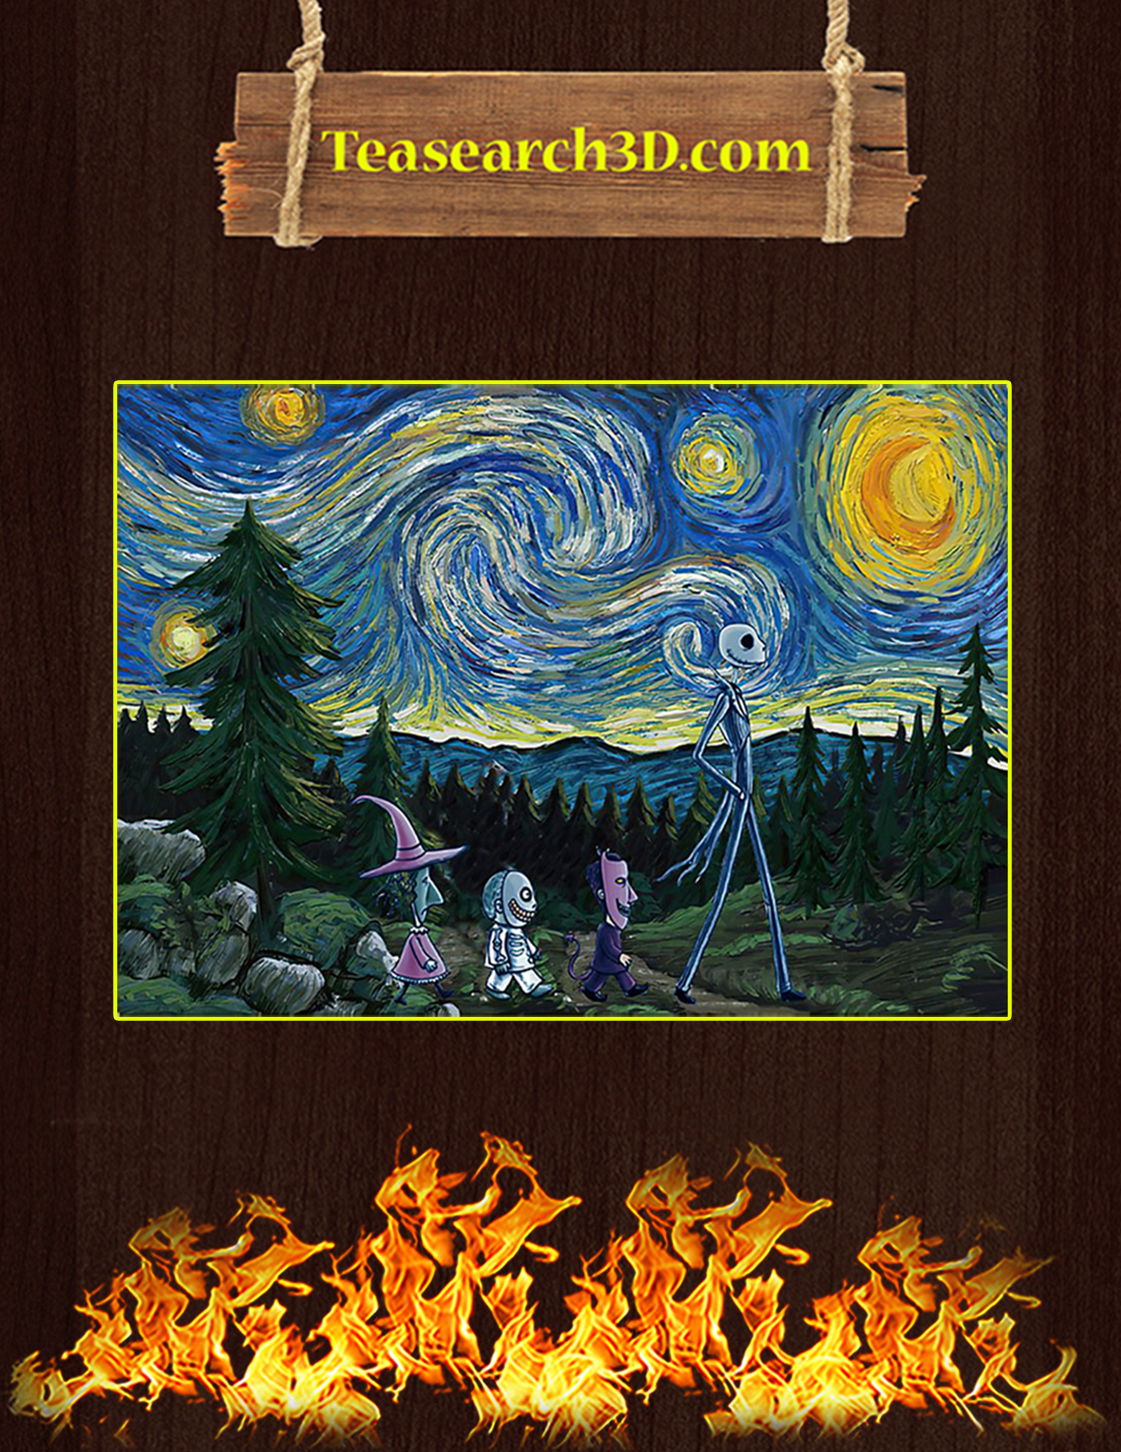 The nightmare before christmas starry night van gogh poster A3